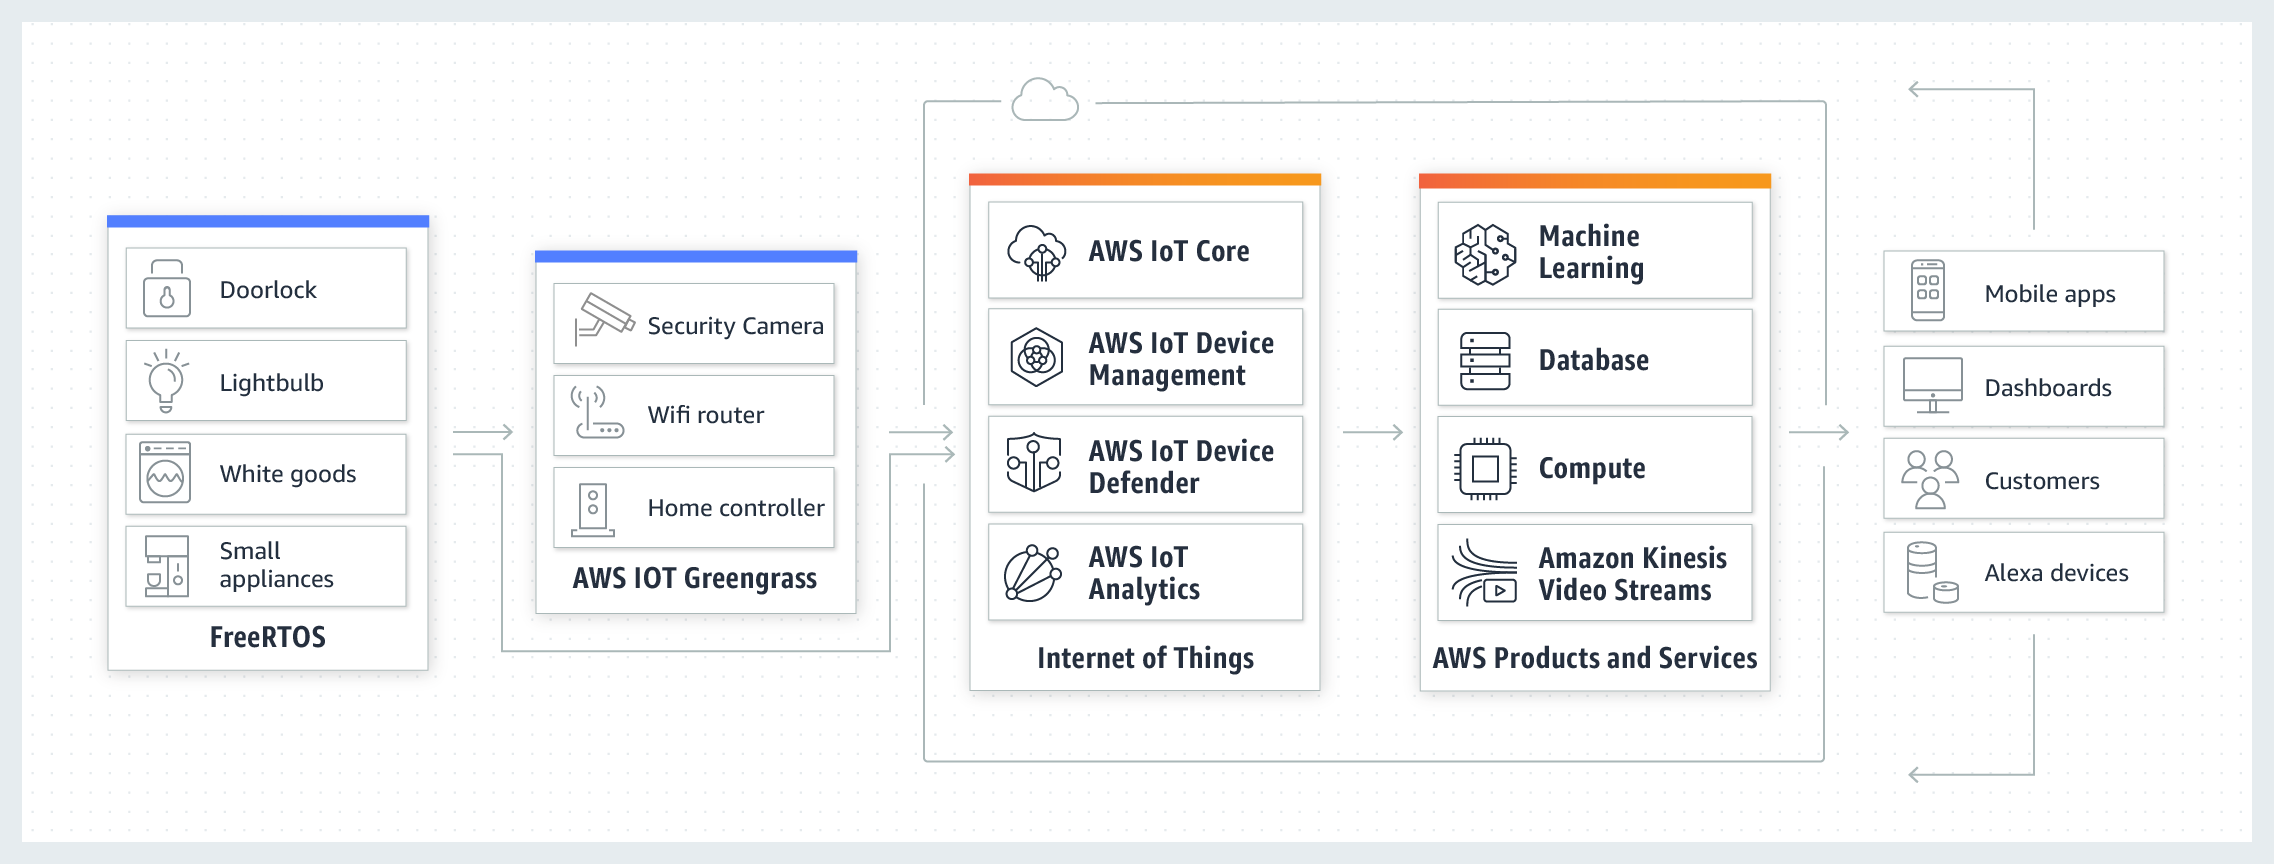 AWS IoT - Connected Home